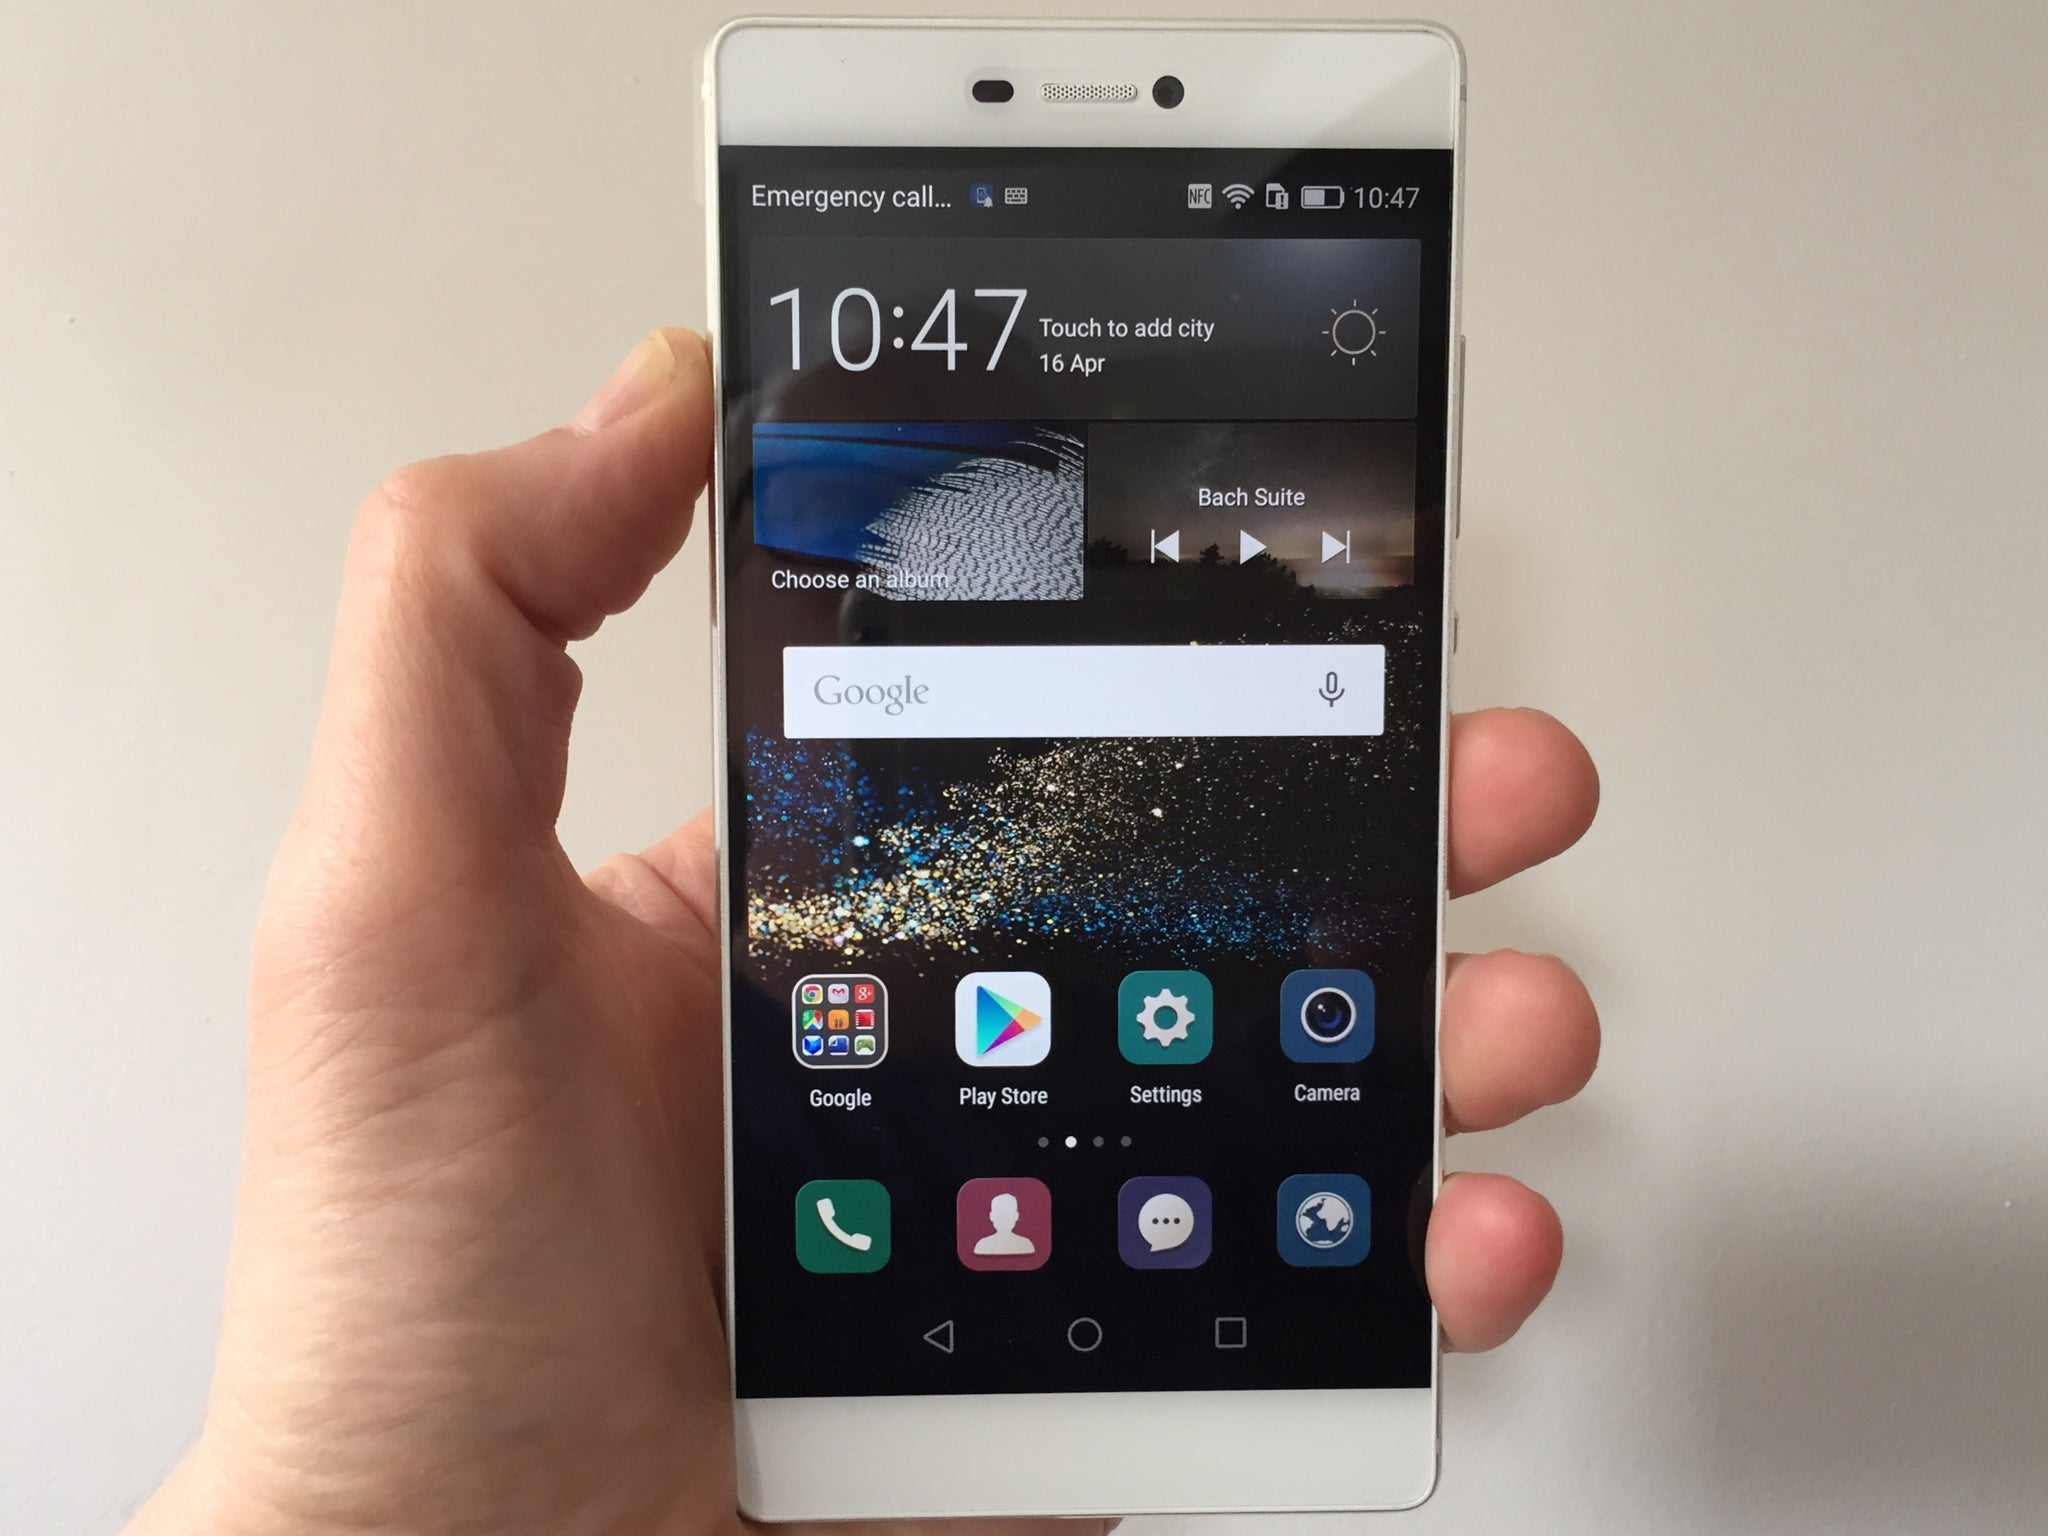 Huawei P8 review: best phones nobody's seen from the biggest company nobody's heard